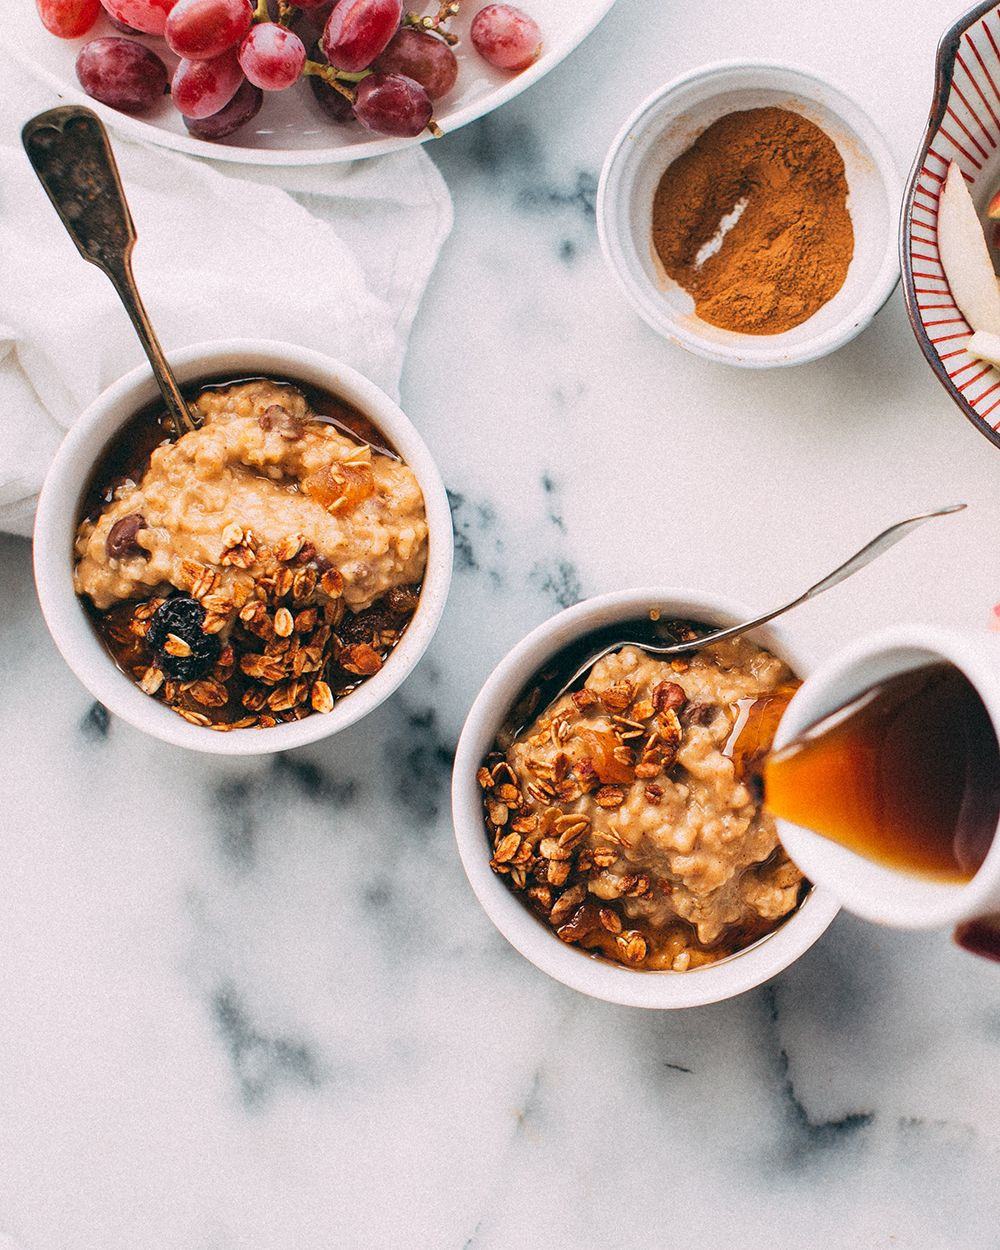 Overnight_oats_food-photographer-jennifer-pallian-dfbrrphtly0-unsplash_edit_